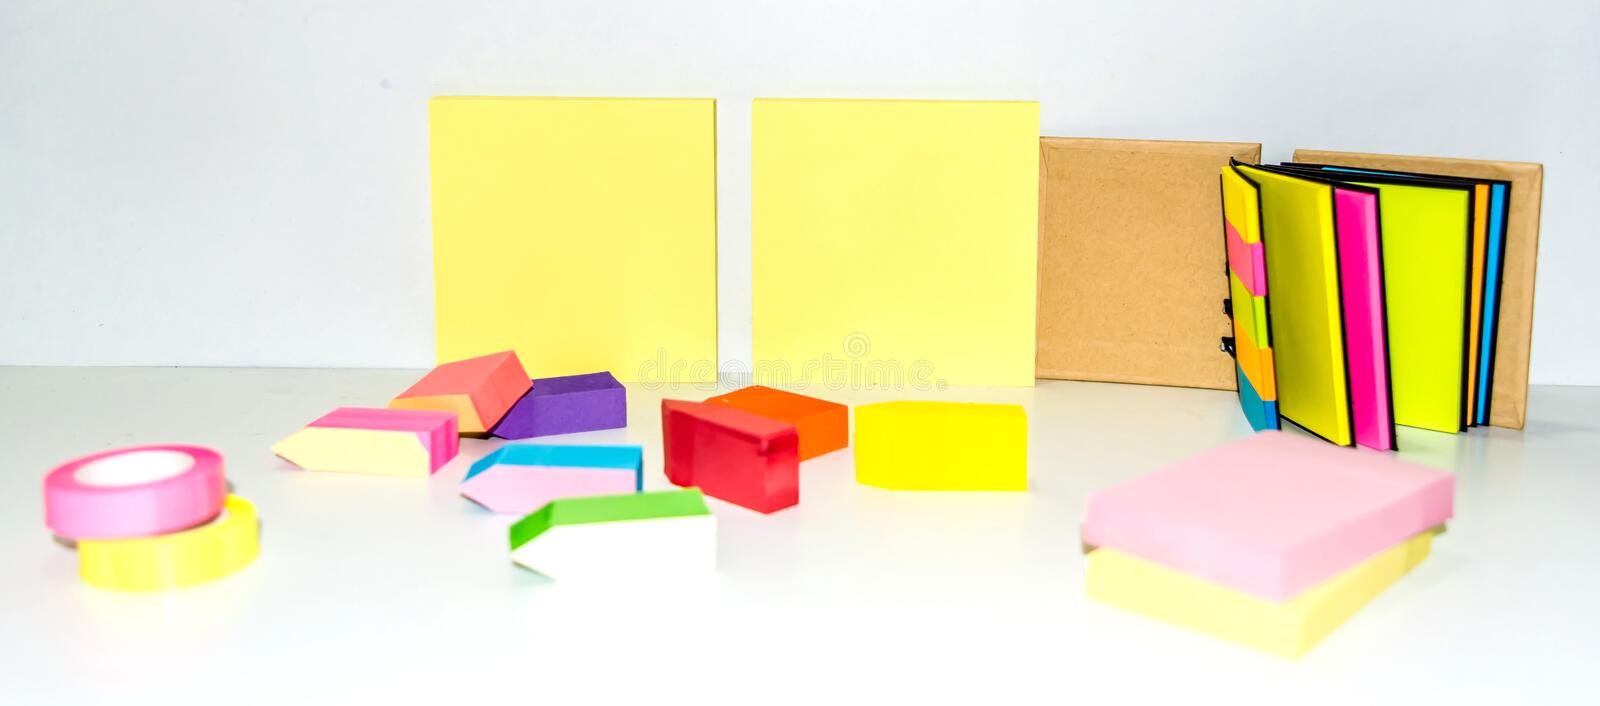 Set of different types of colorful sticky note isolated on white background.  stock image